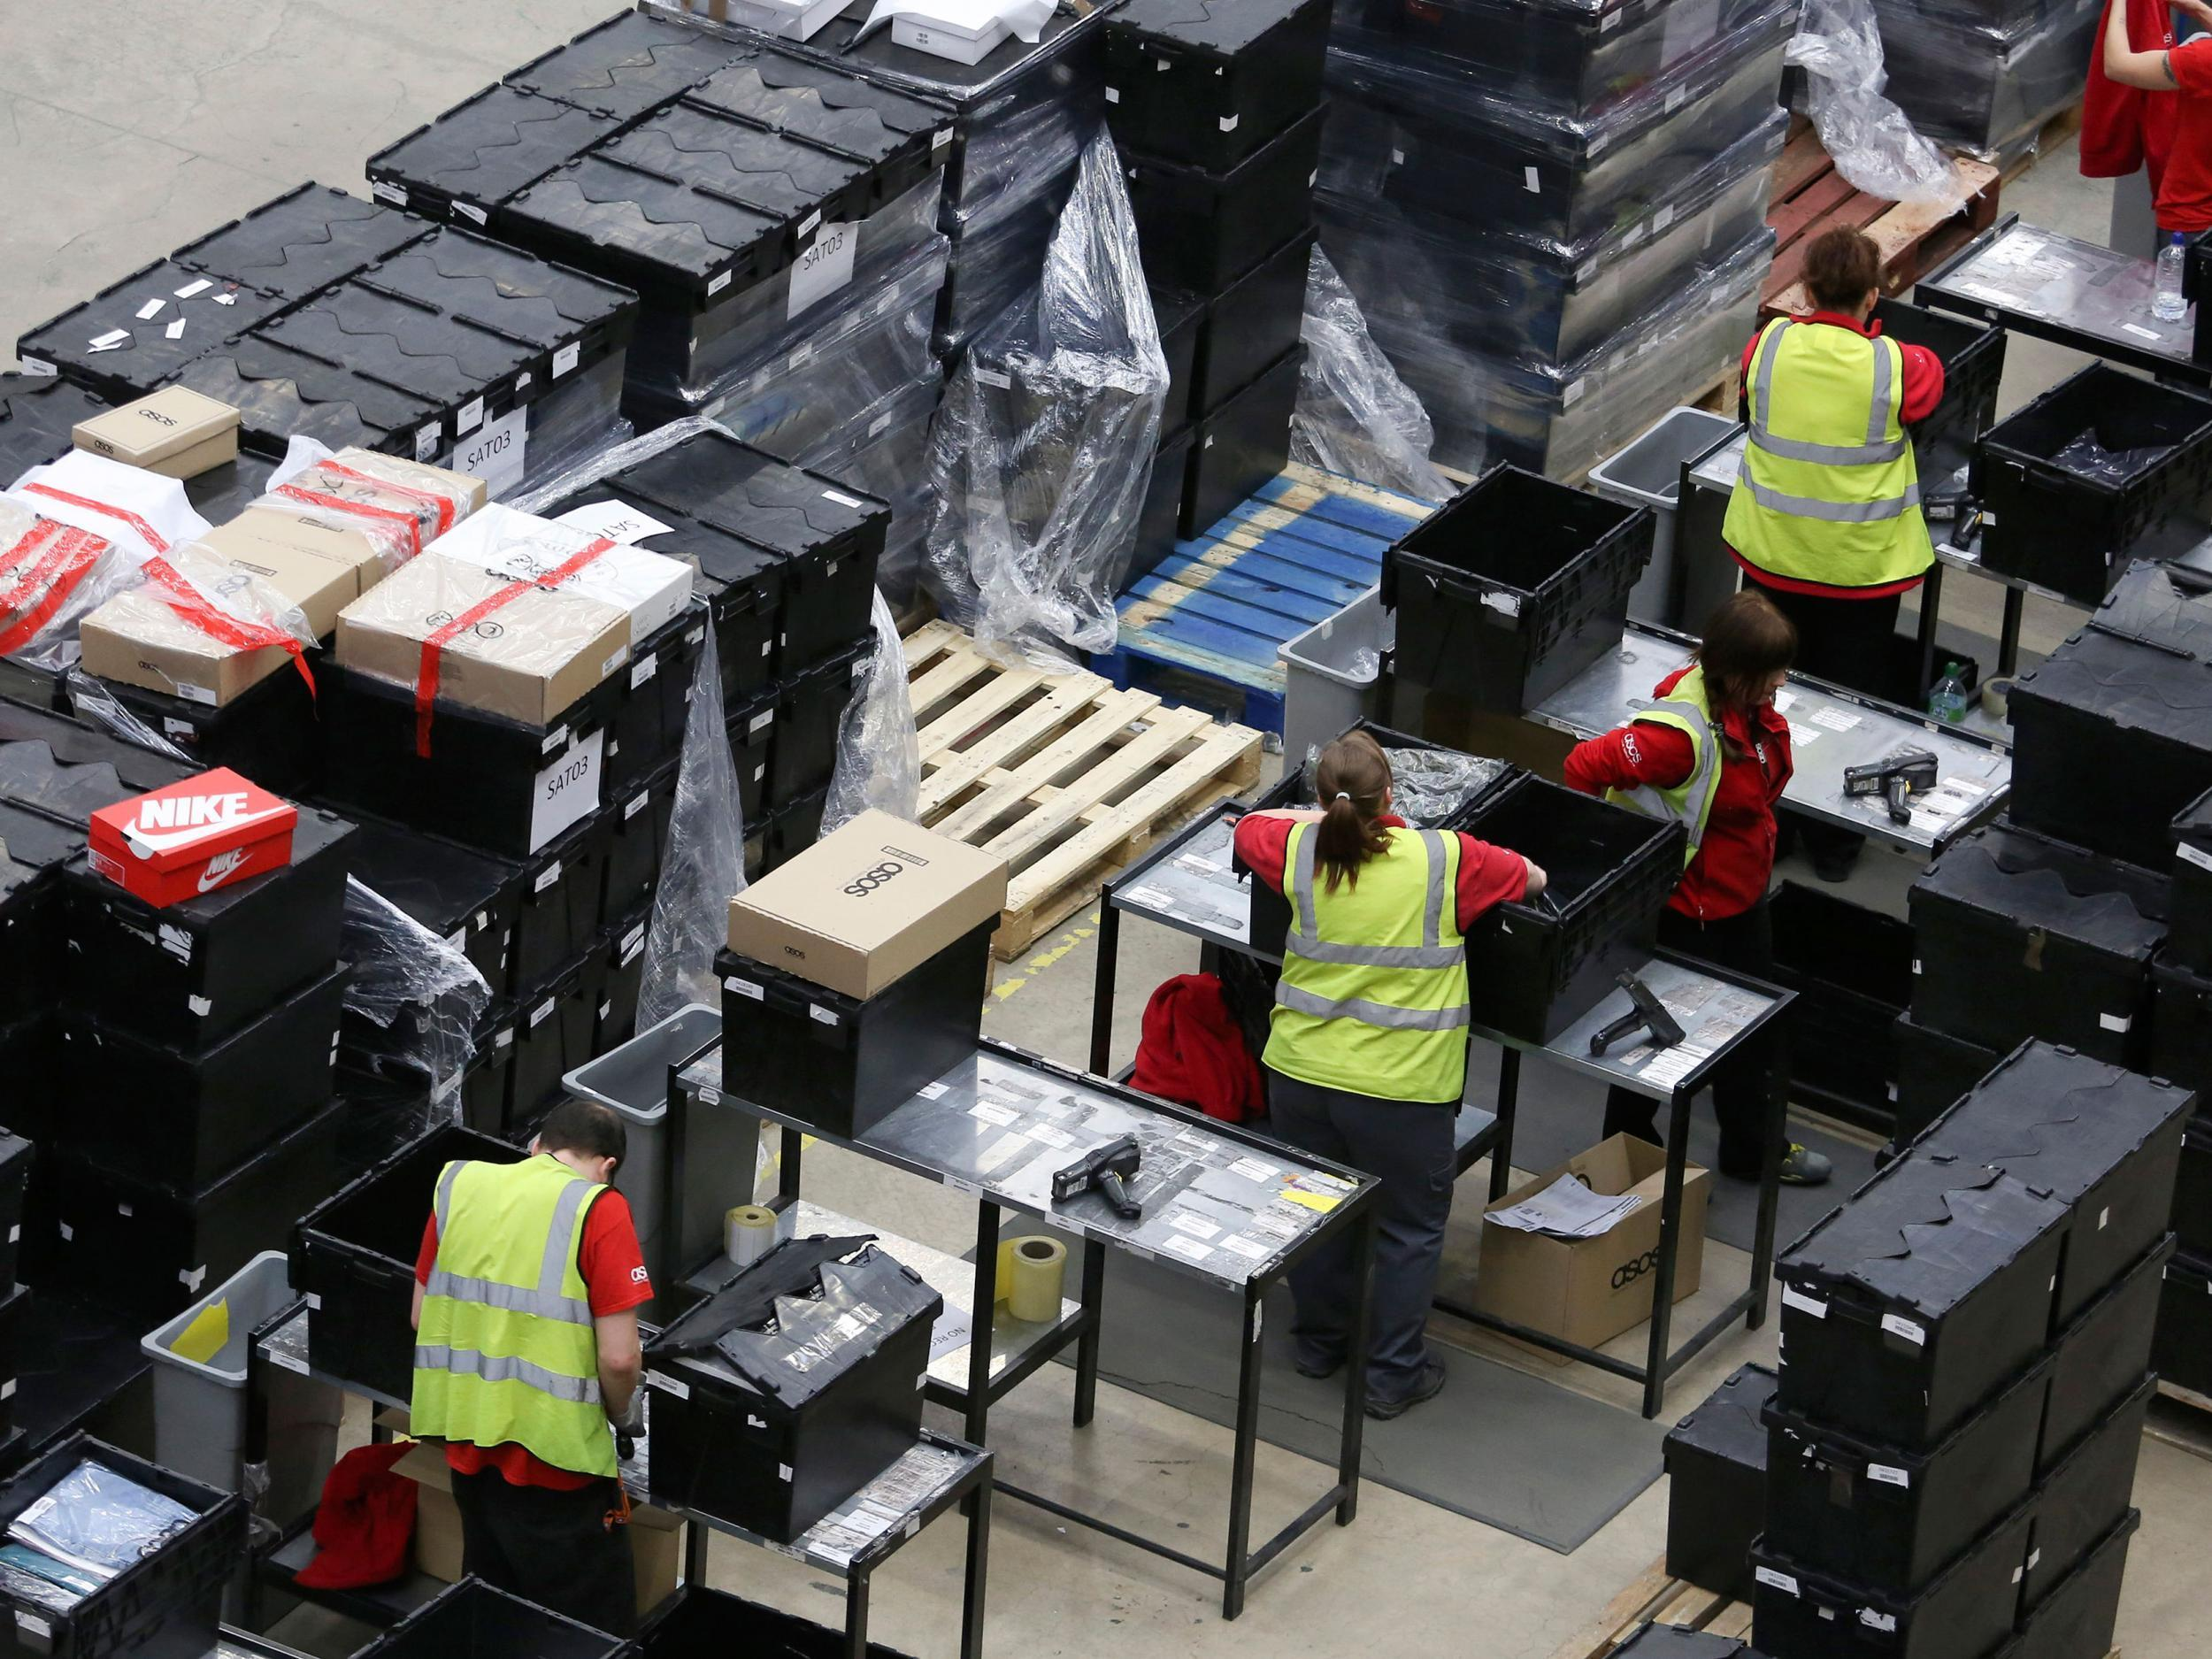 3b4ebf584 ASOS warehouse workers face constant CCTV monitoring and threat of random  searches